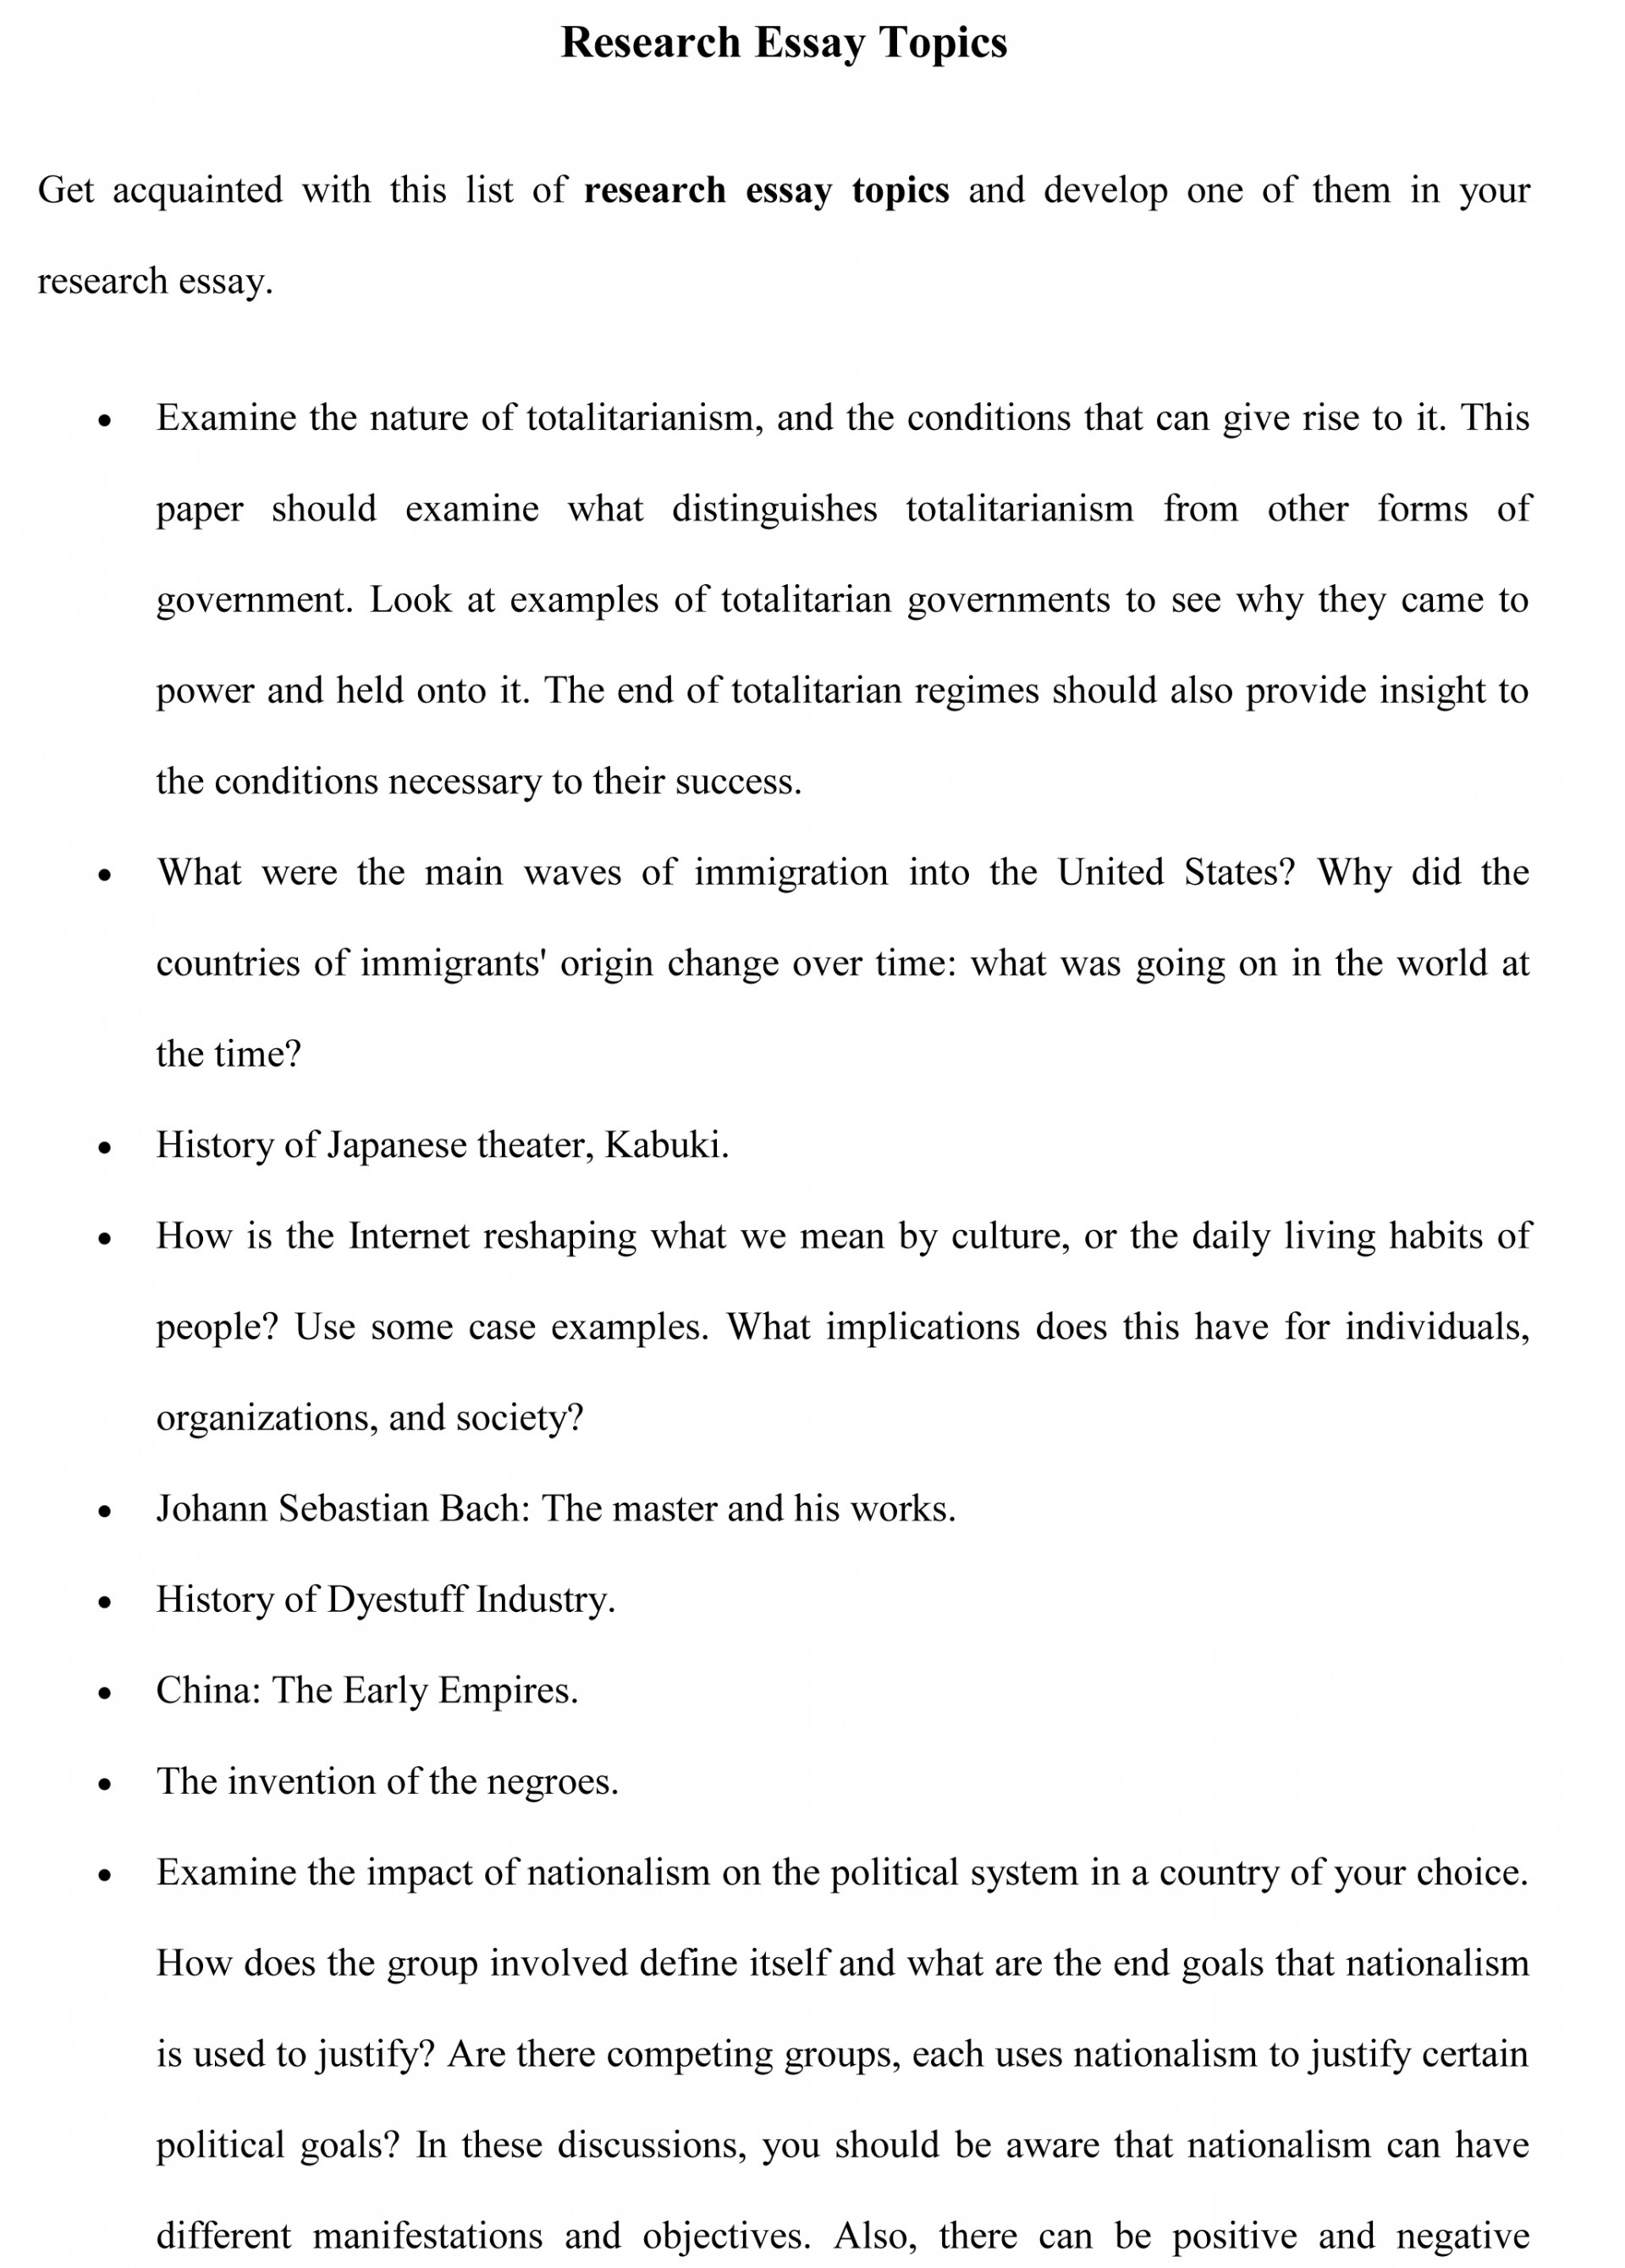 014 Research Paper Essay Topics Sample Great For History Stupendous Papers Good Us Best World 1920